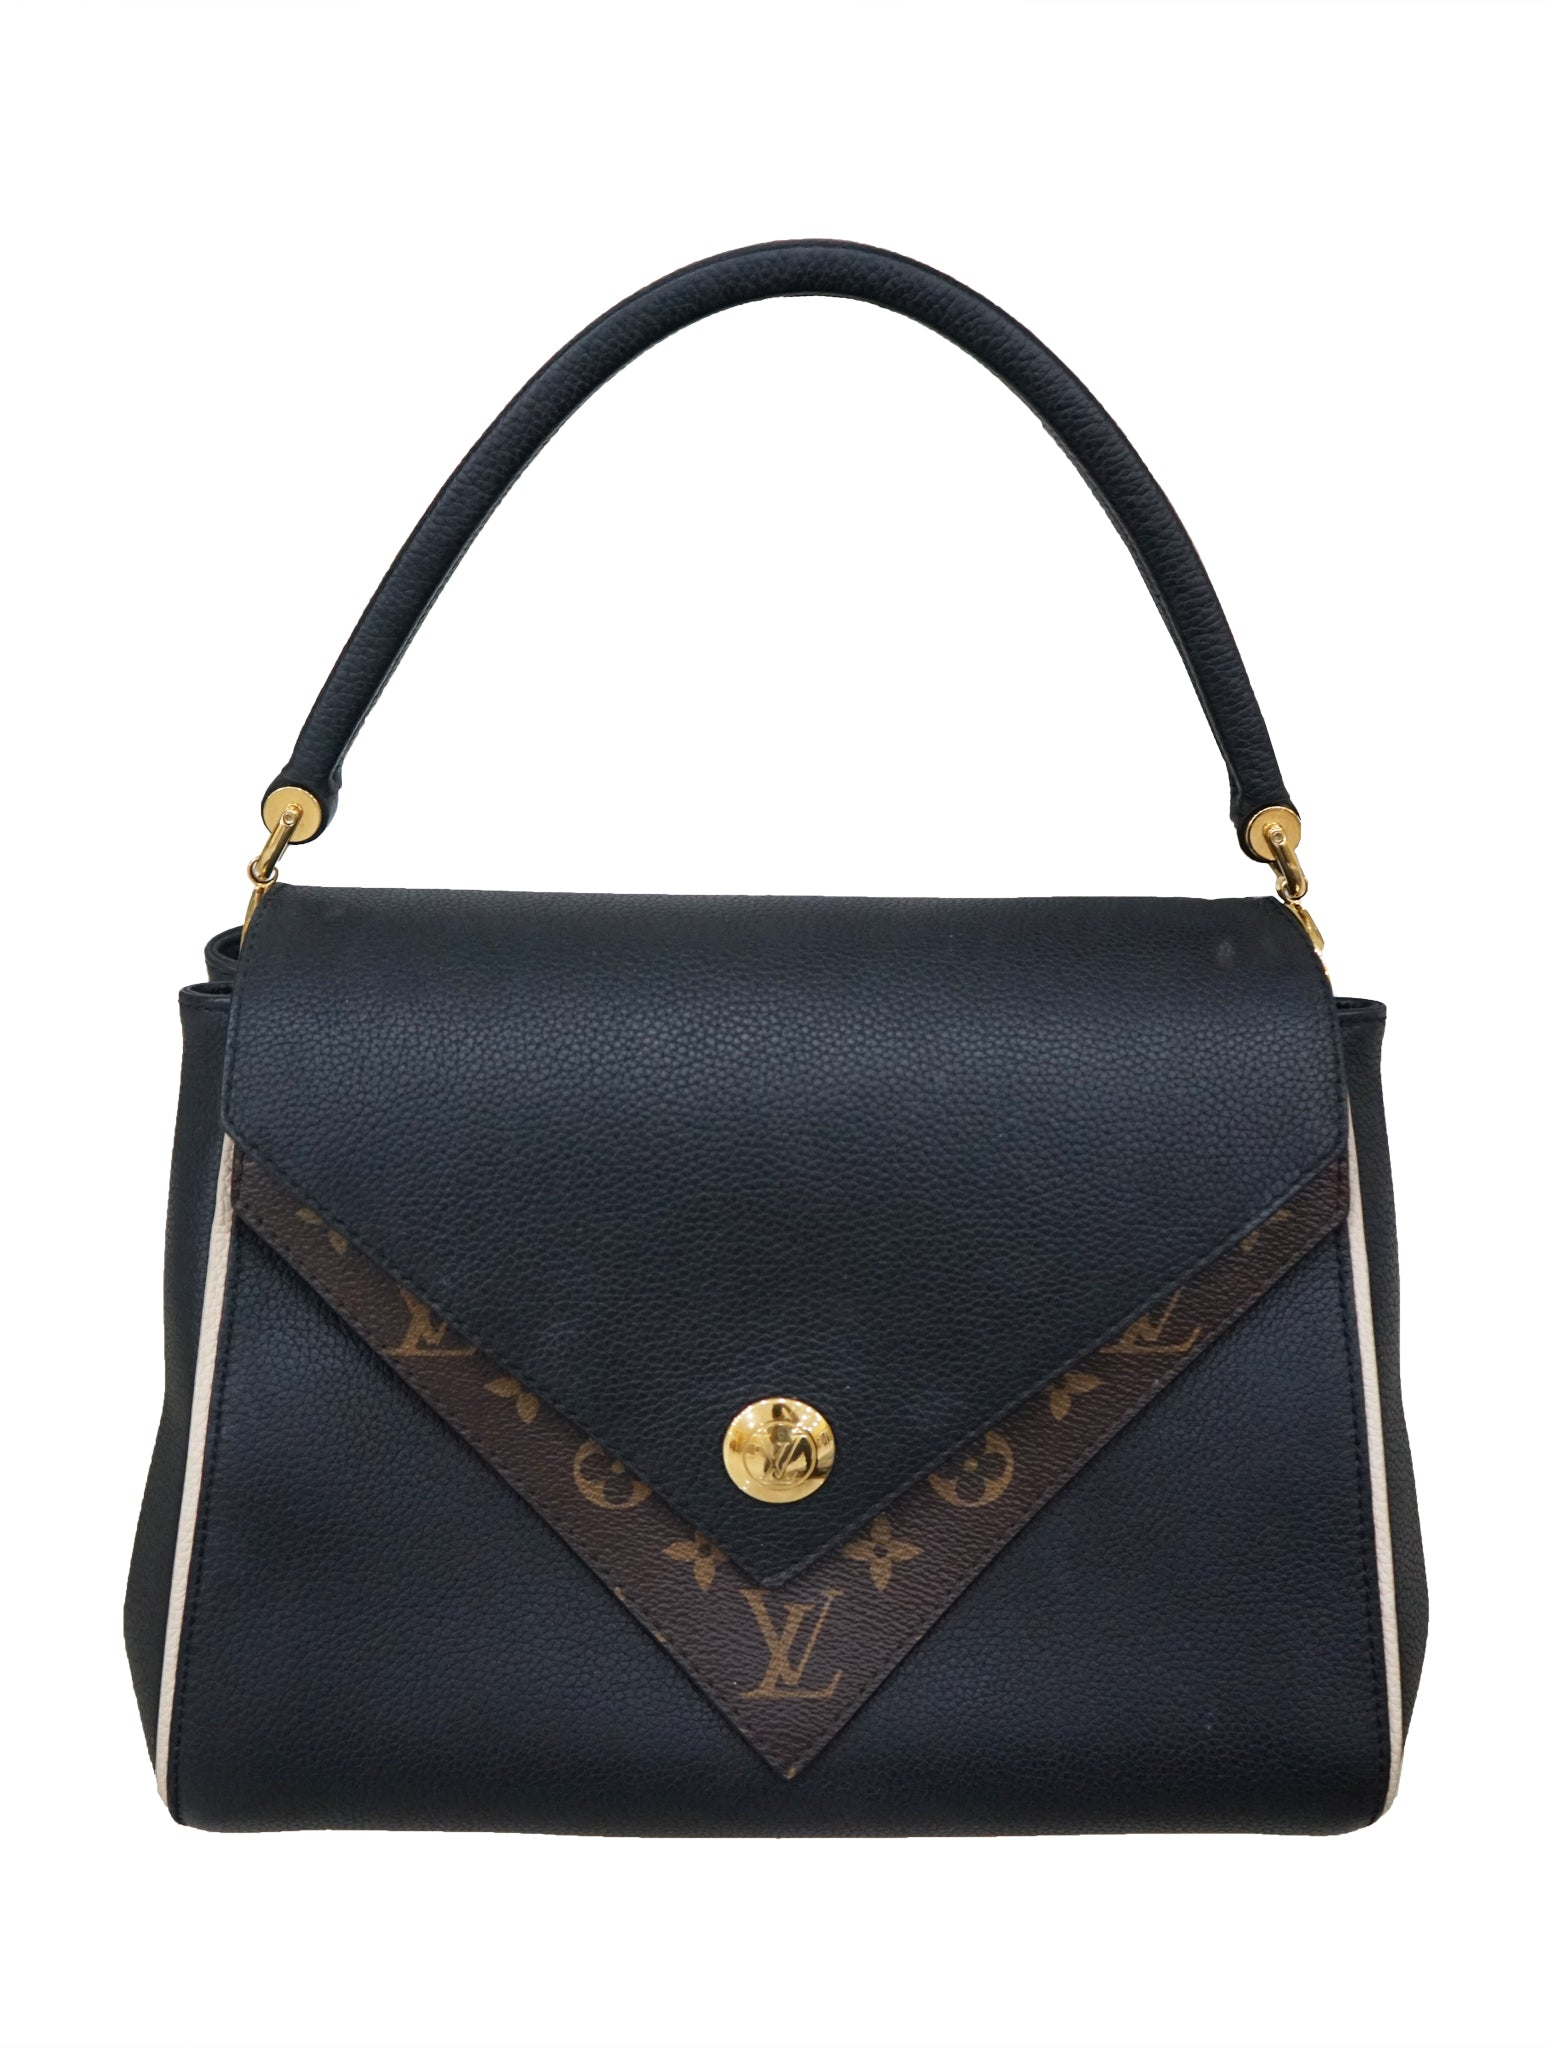 37edd2e9594f LOUIS VUITTON DOUBLE V BAG – Kidsstyleforless